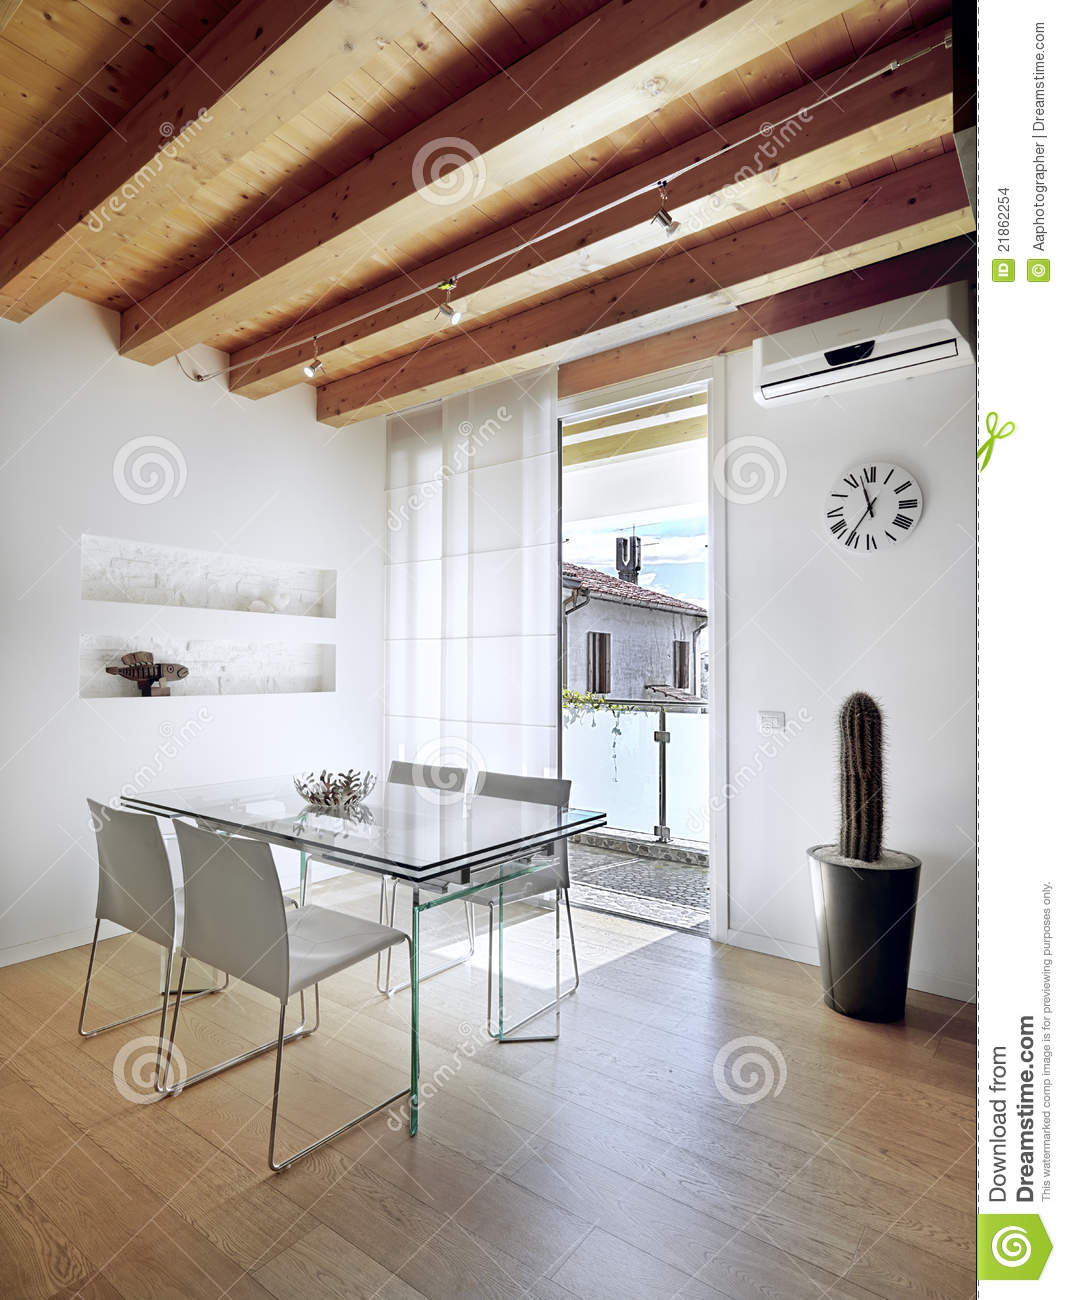 Glass Dining Table In Modern Apartment Stock Photo Image Of Fixtures Niche 21862254